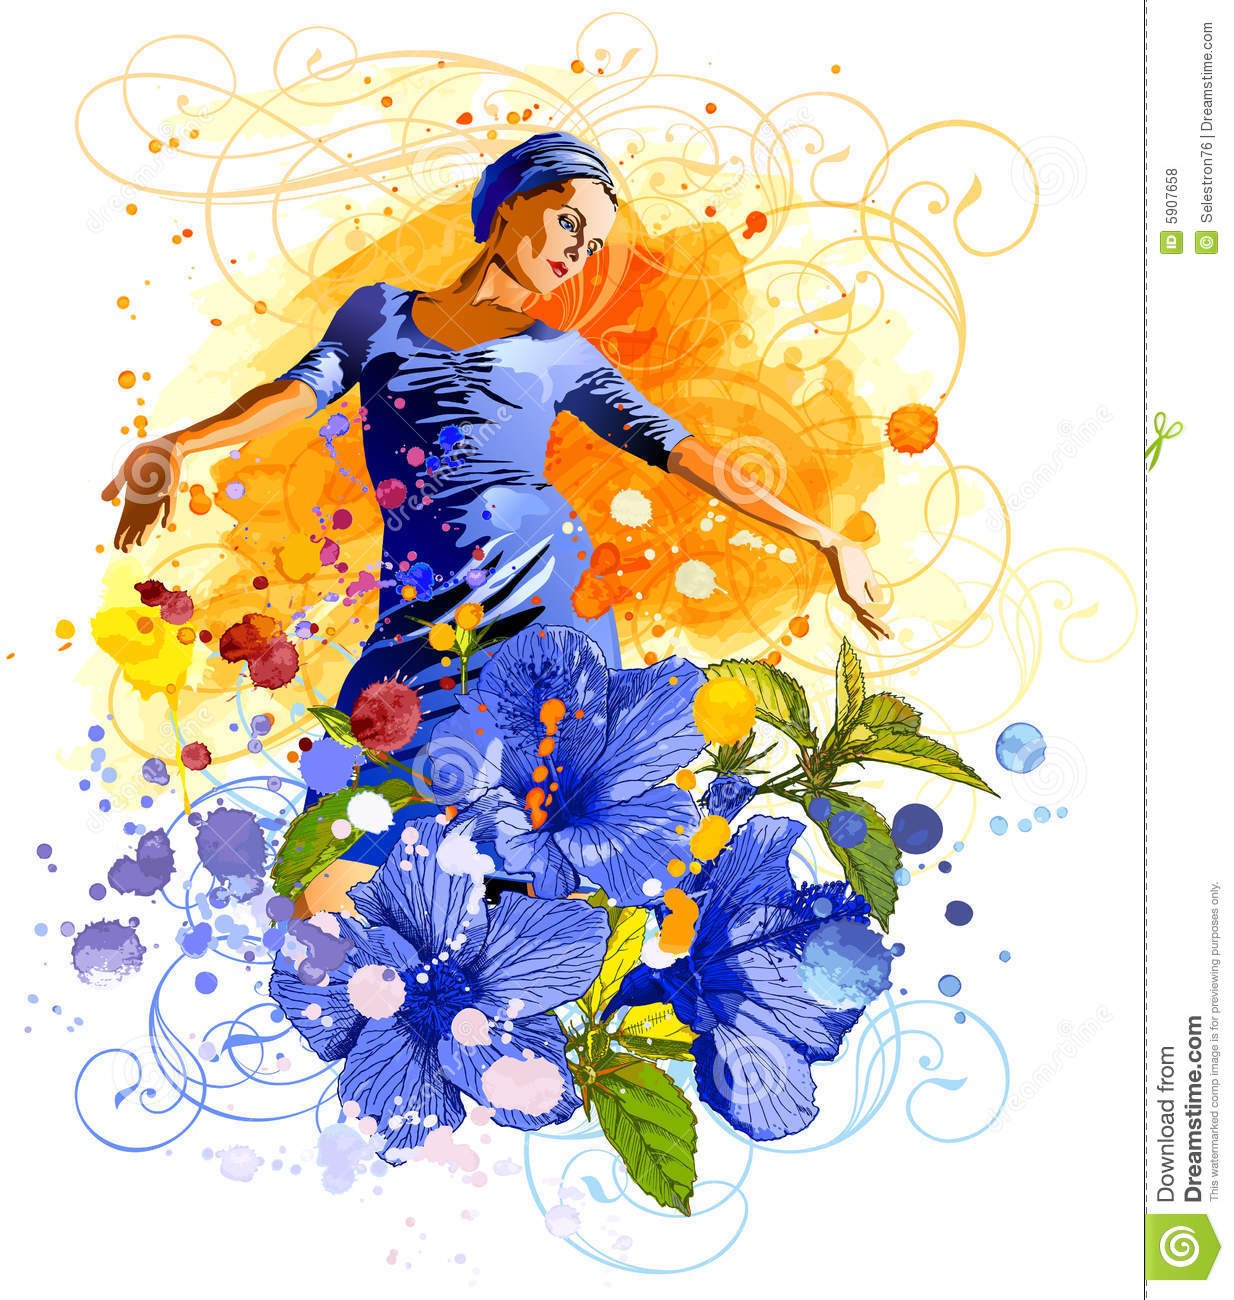 Girl, Flowers & Watercolors Royalty Free Stock Photos - Image: 5907658